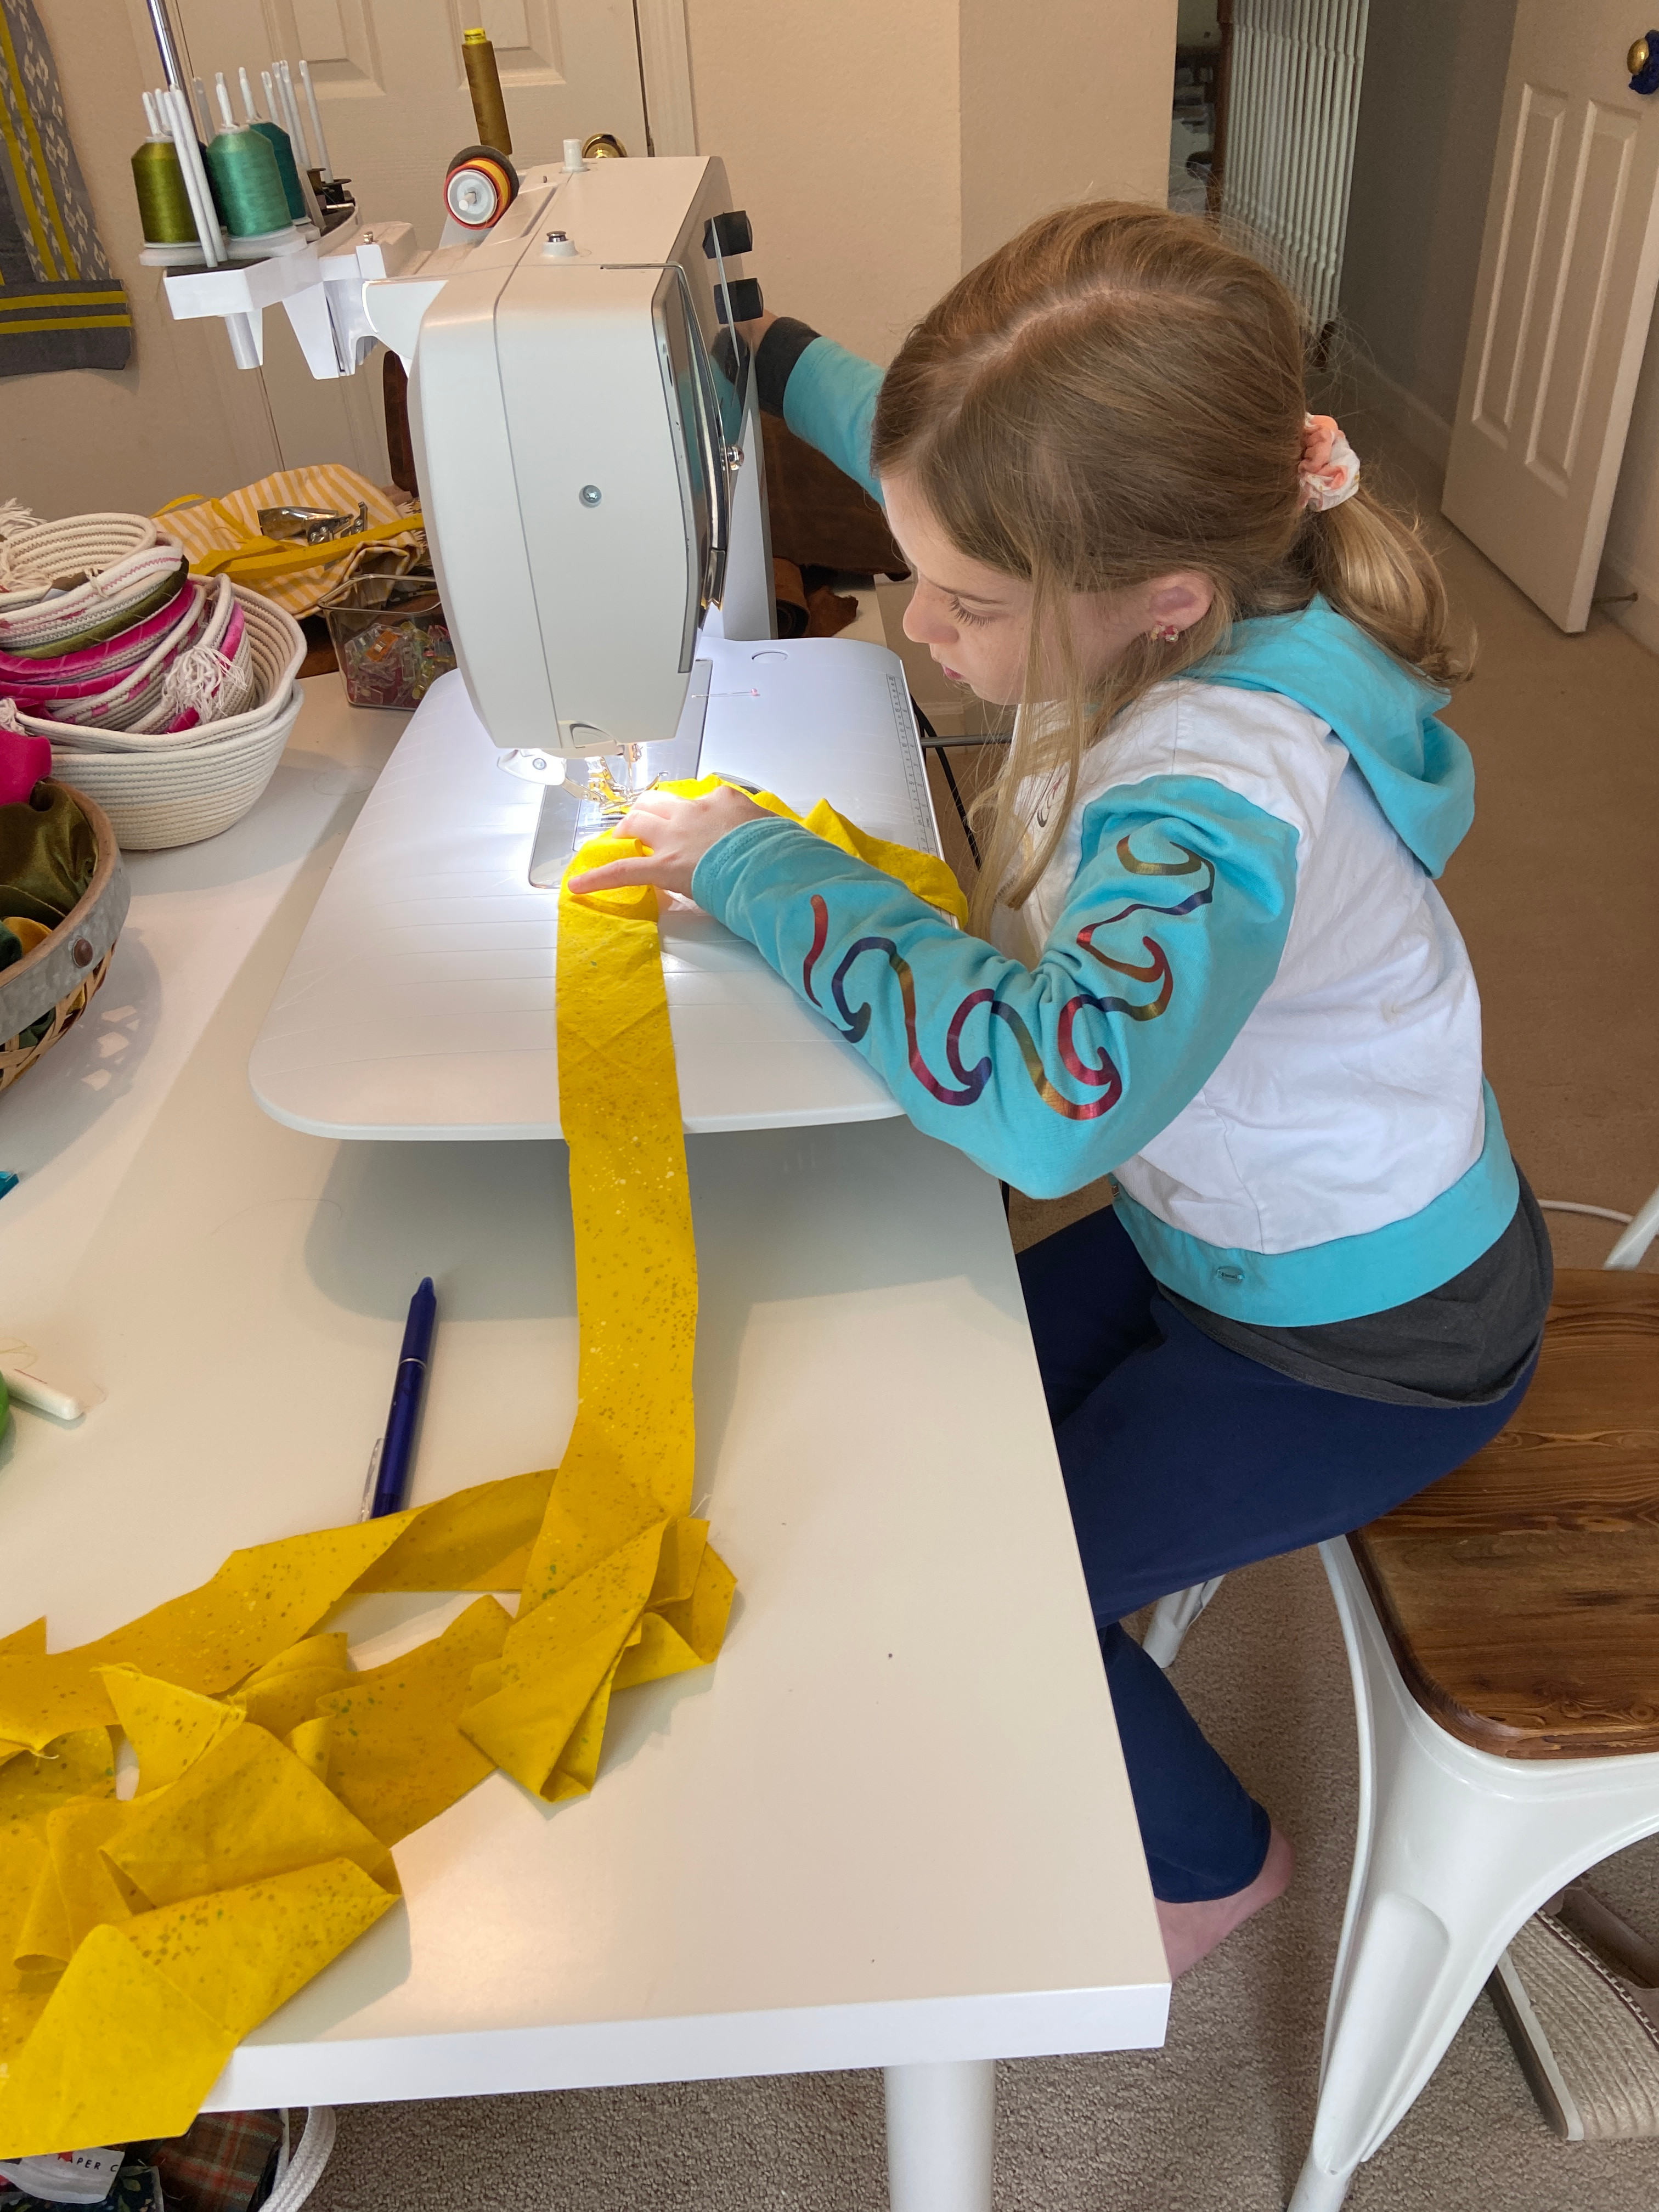 MINI MAKERS CAMP: Make and Pop Up Shop!